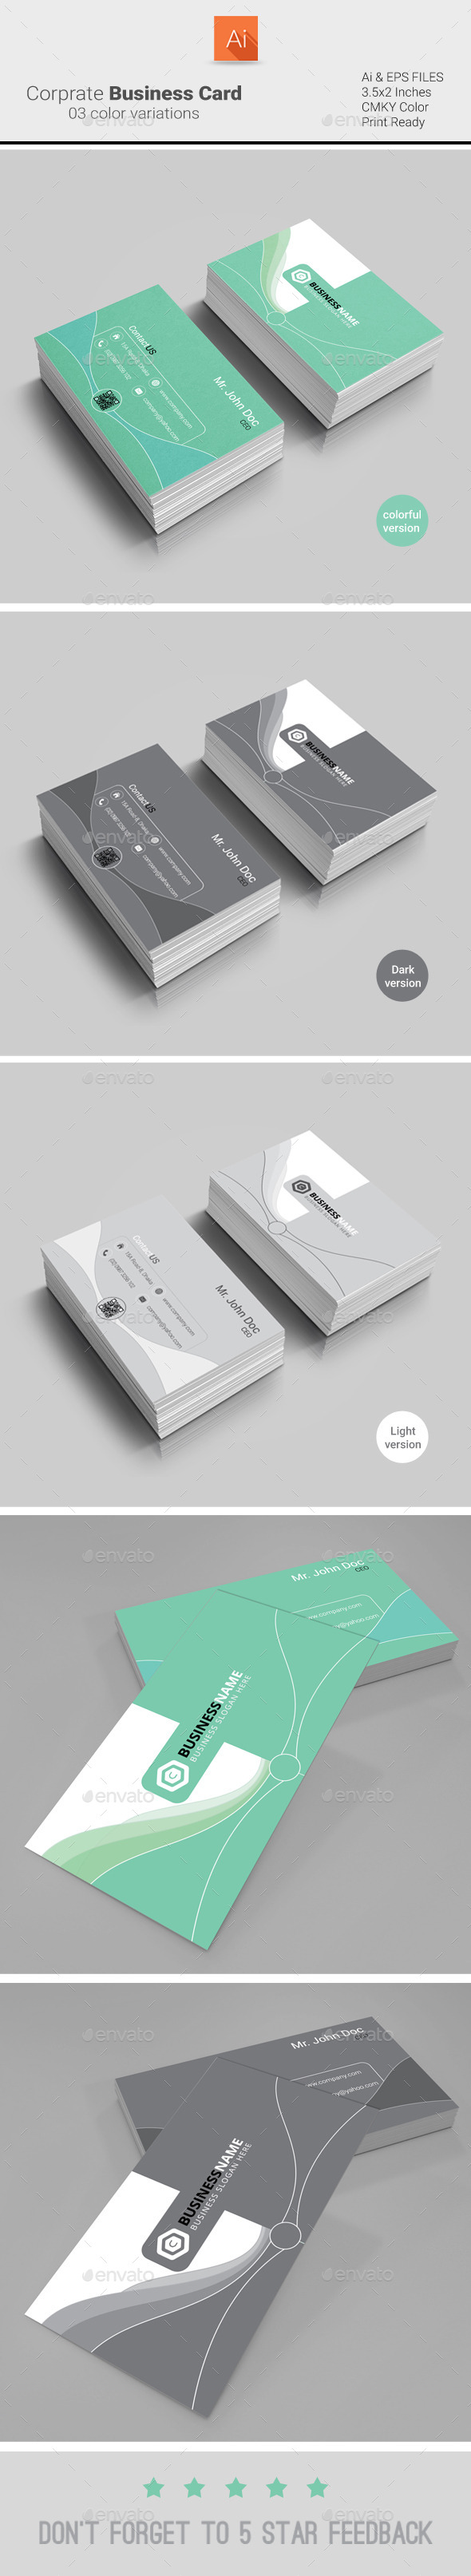 GraphicRiver Corporate Business Card 9273241